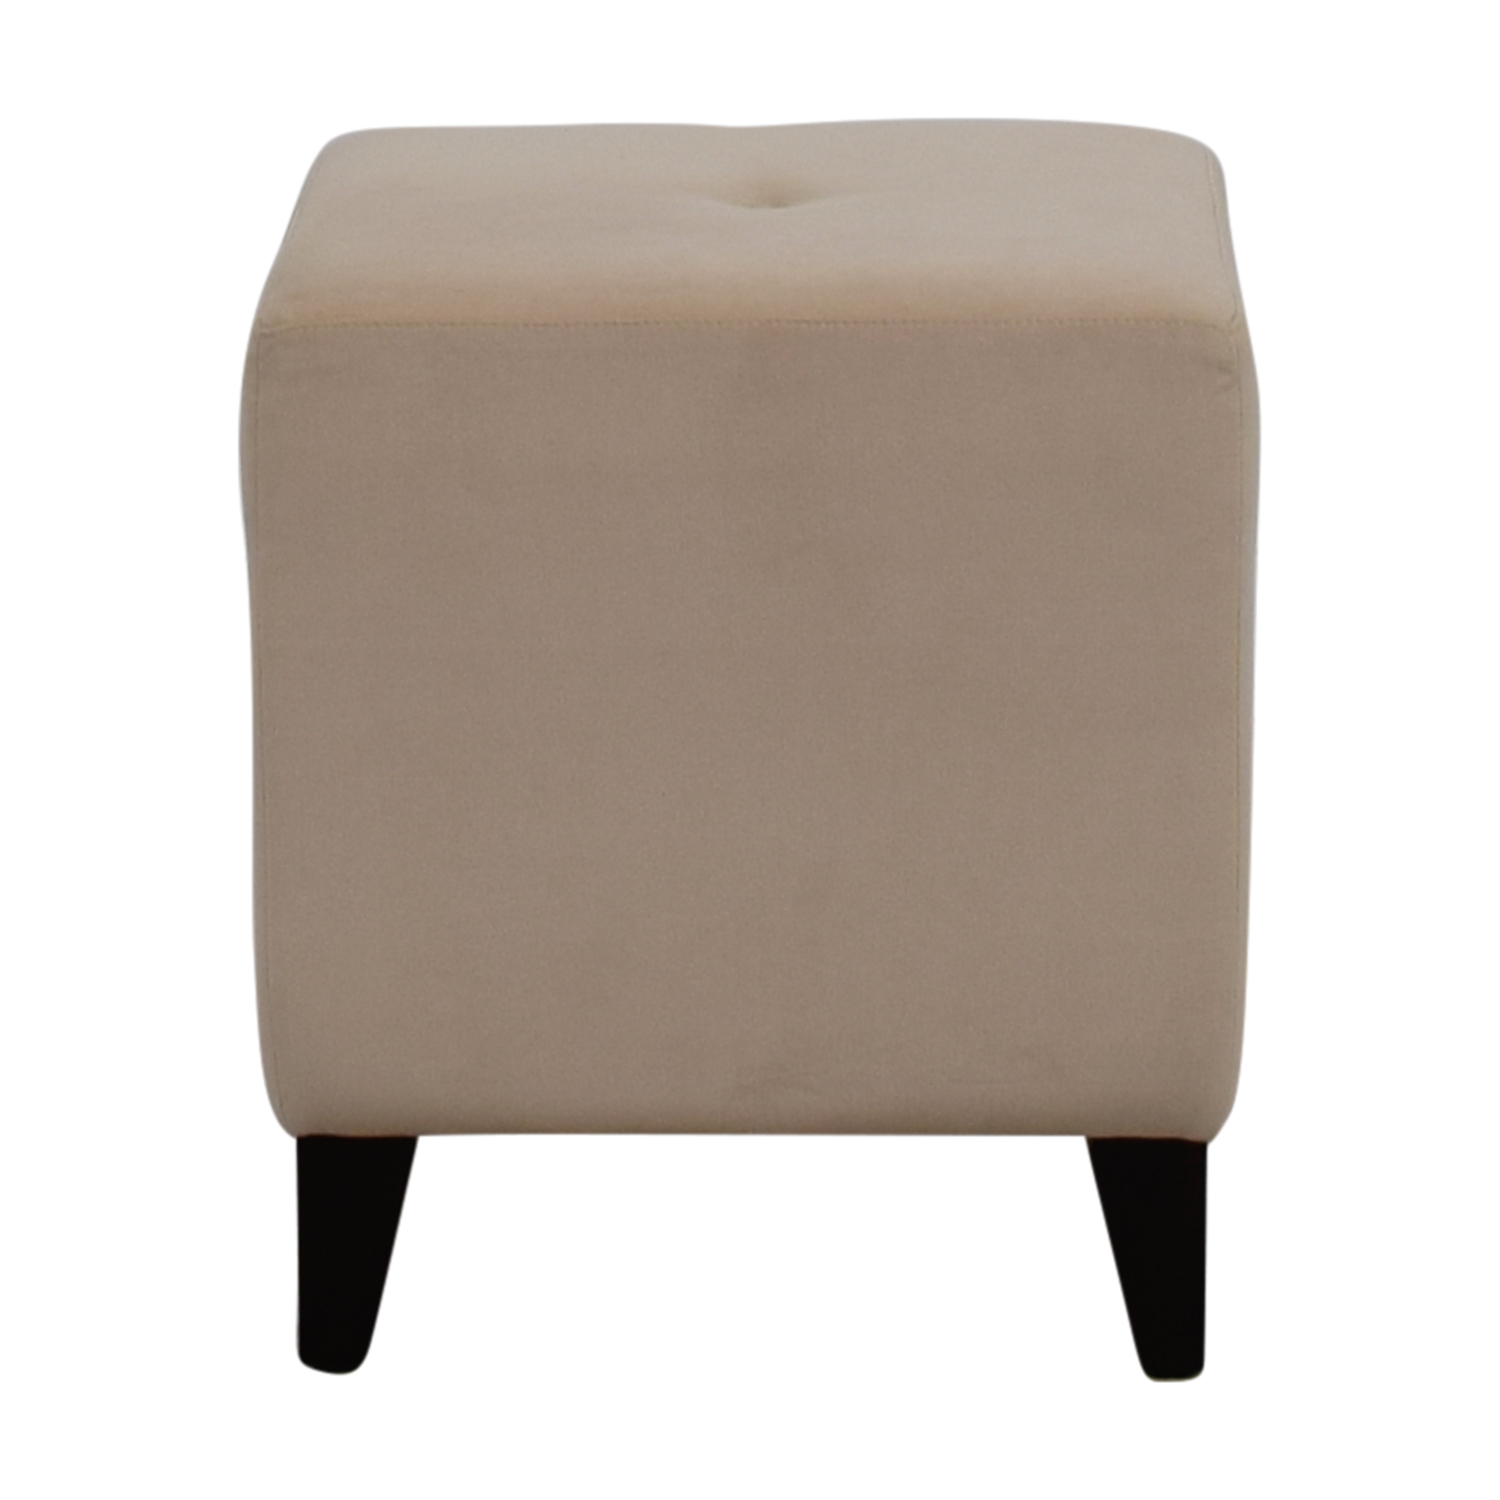 West Elm West Elm Tan Stool second hand